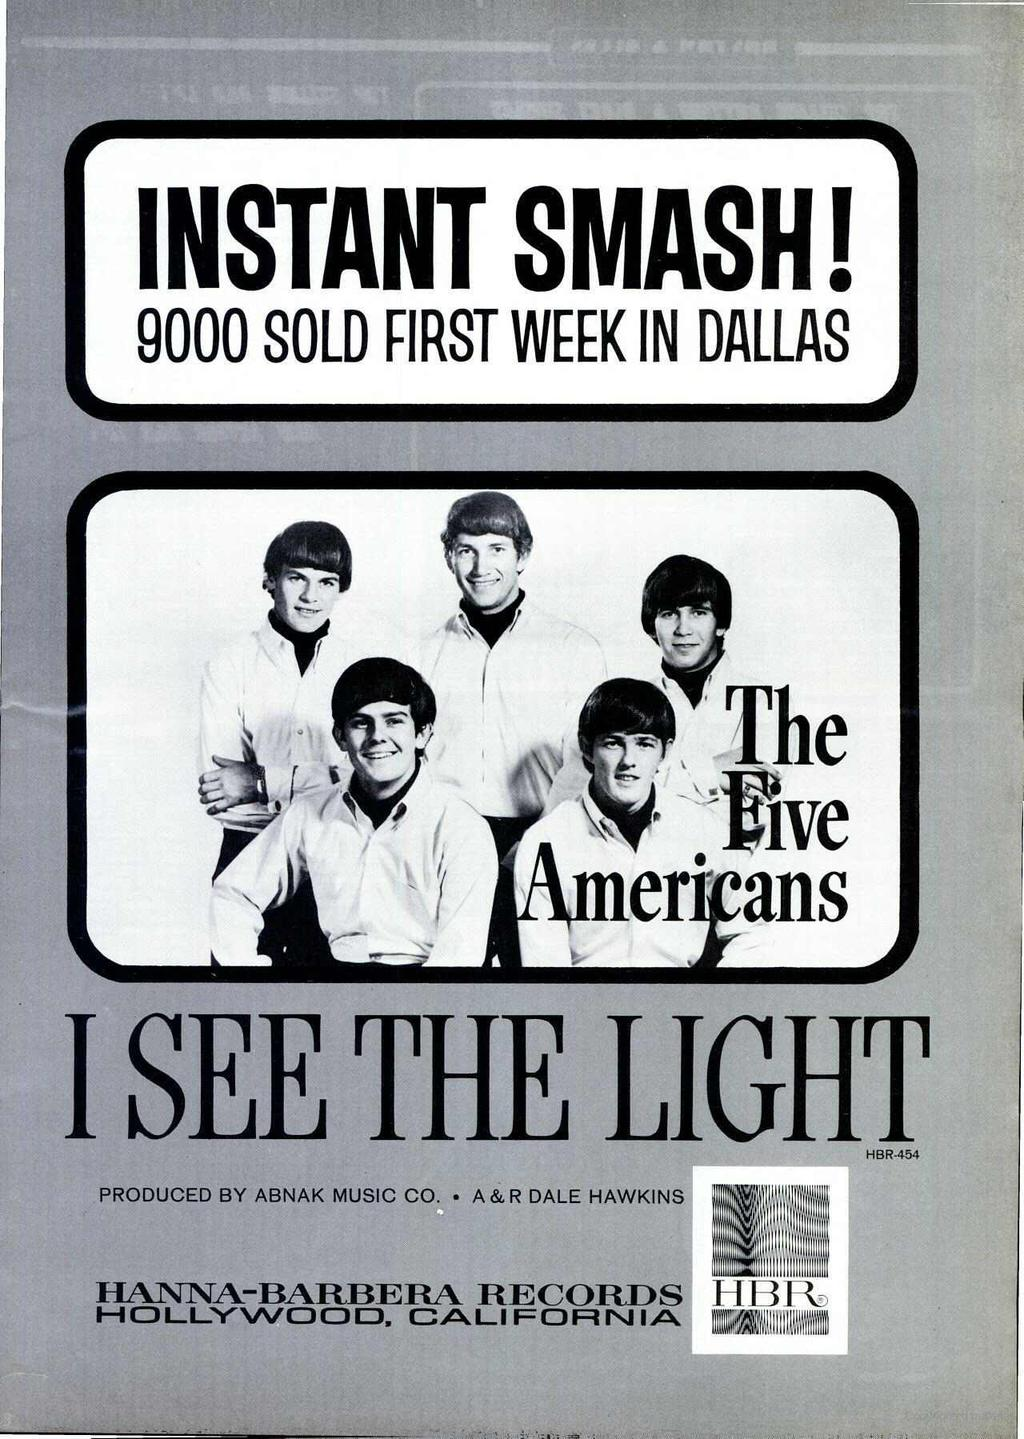 r INSTANT SMASH! 9000 SOLD FIRST WEEK IN DALLAS I SEE THE LIGHT PRODUCED BY ABNAK MUSIC CO.